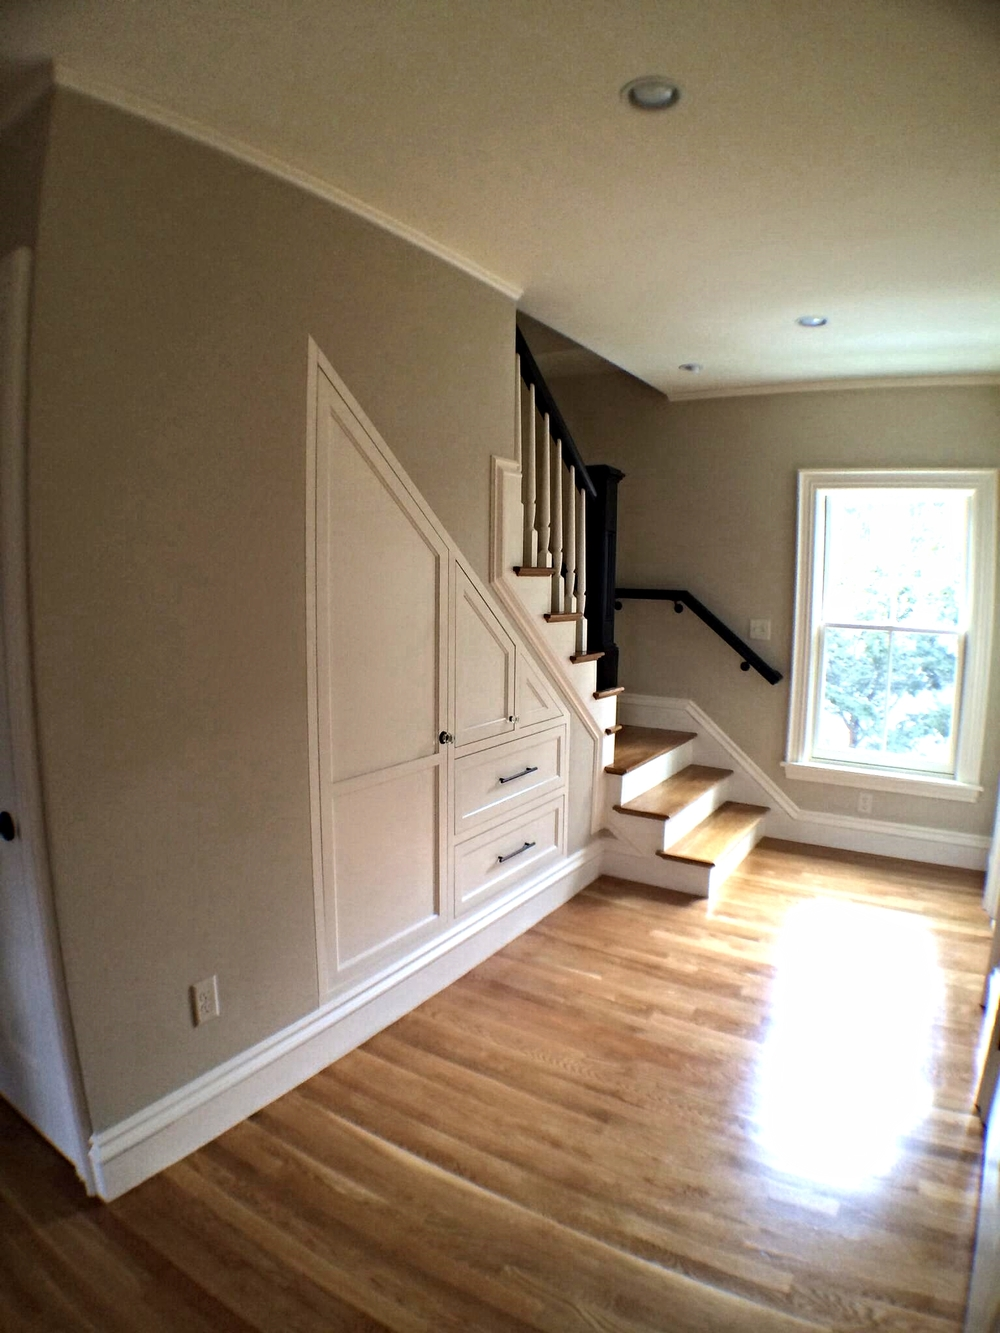 New stairs to 3rd floor with built-ins